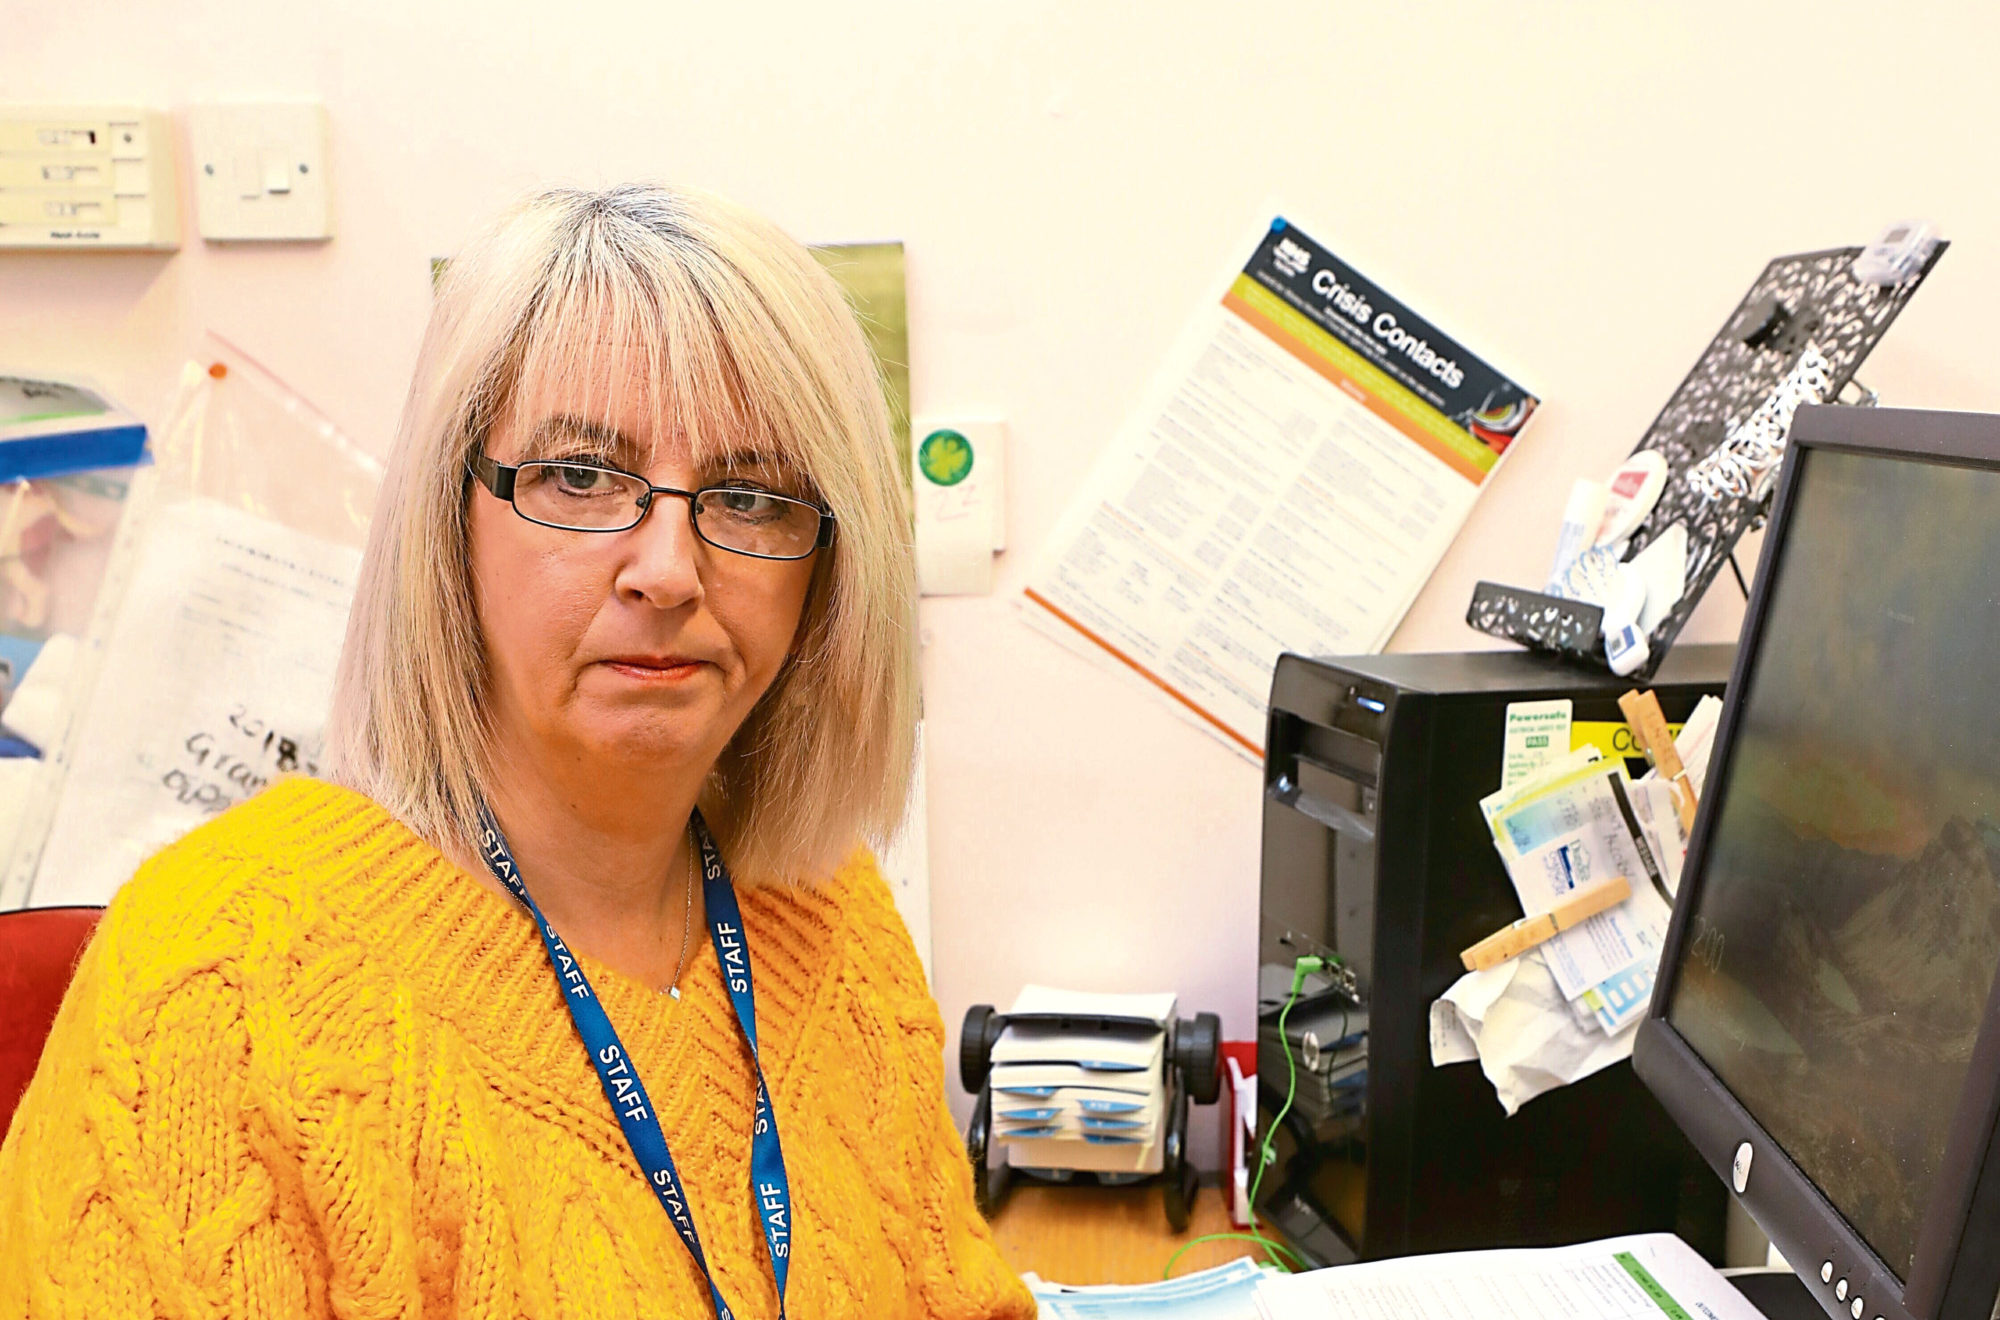 Ginny Lawson, manager of the Brooksbank Centre